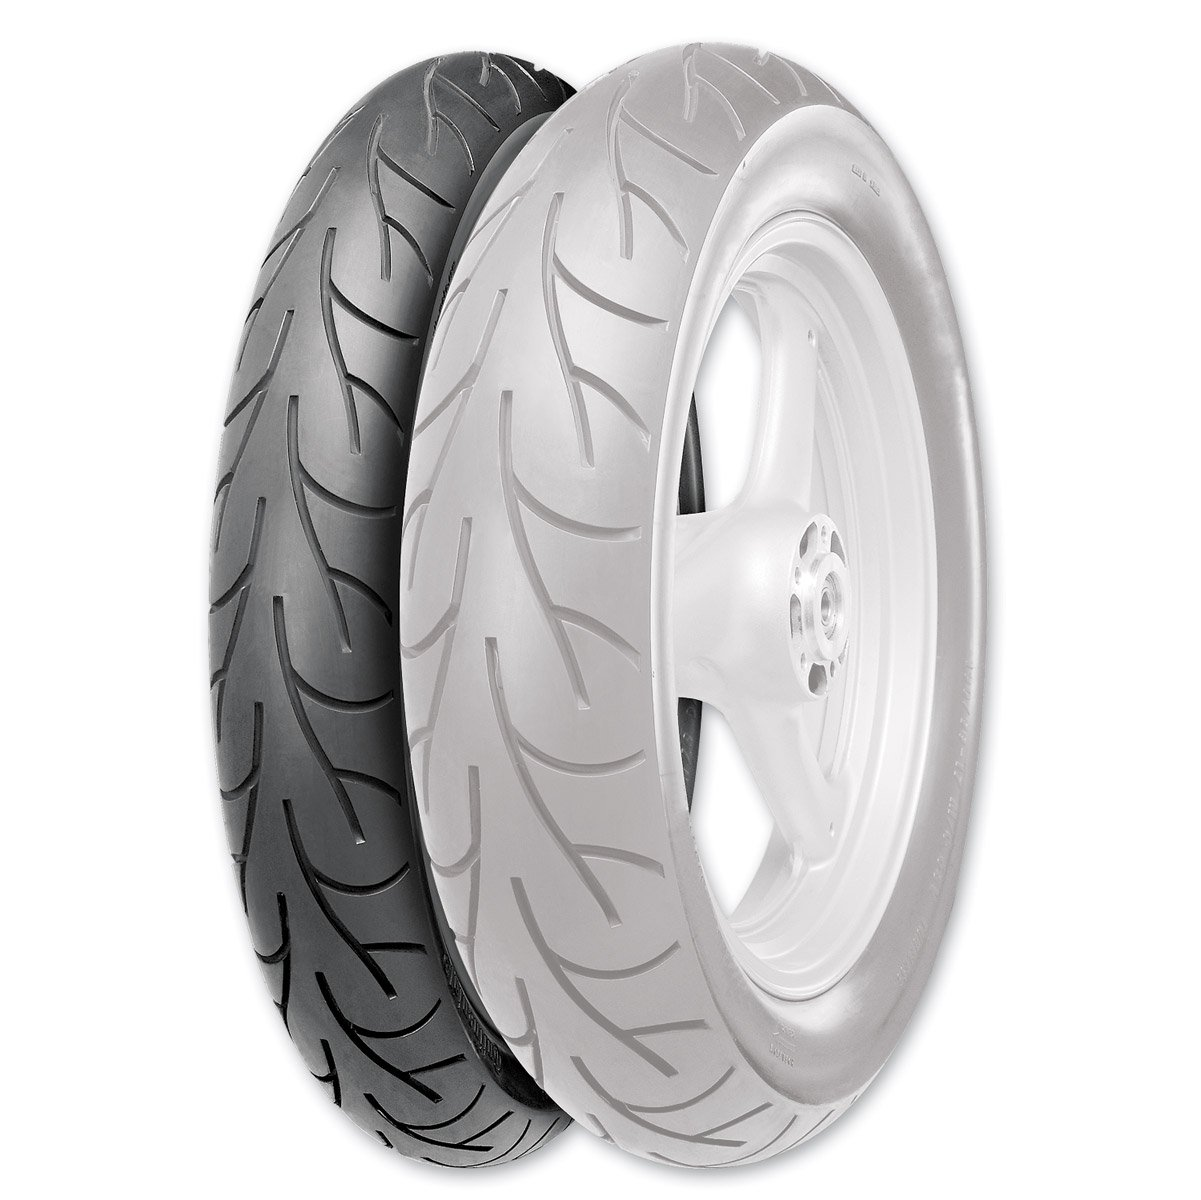 Continental Go Front Tire 3.00-21H